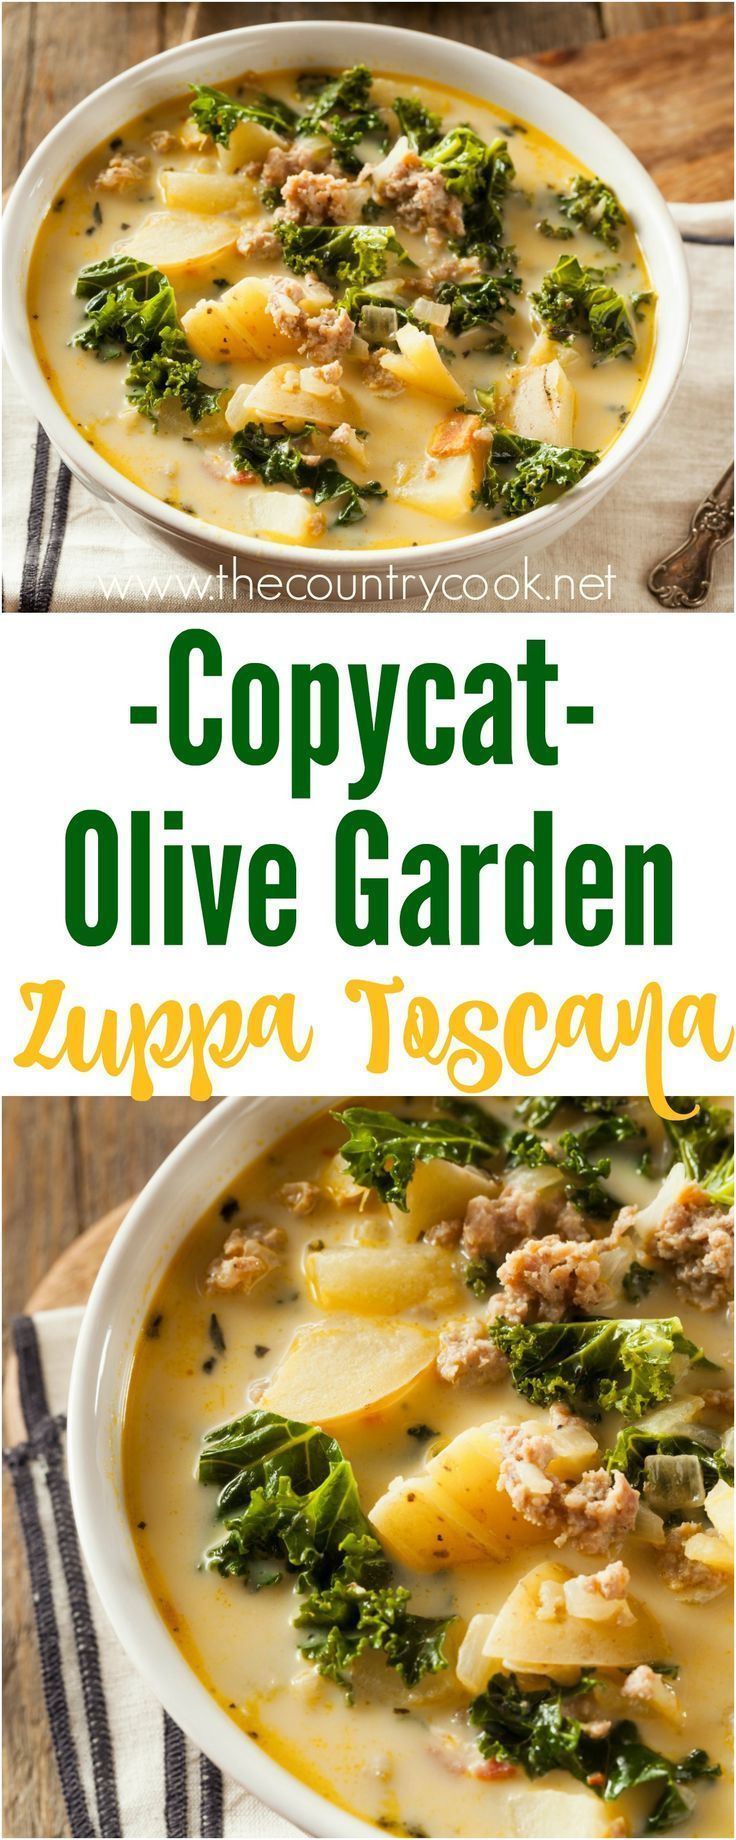 Olive garden zuppa toscana Recipe (With images) Easy